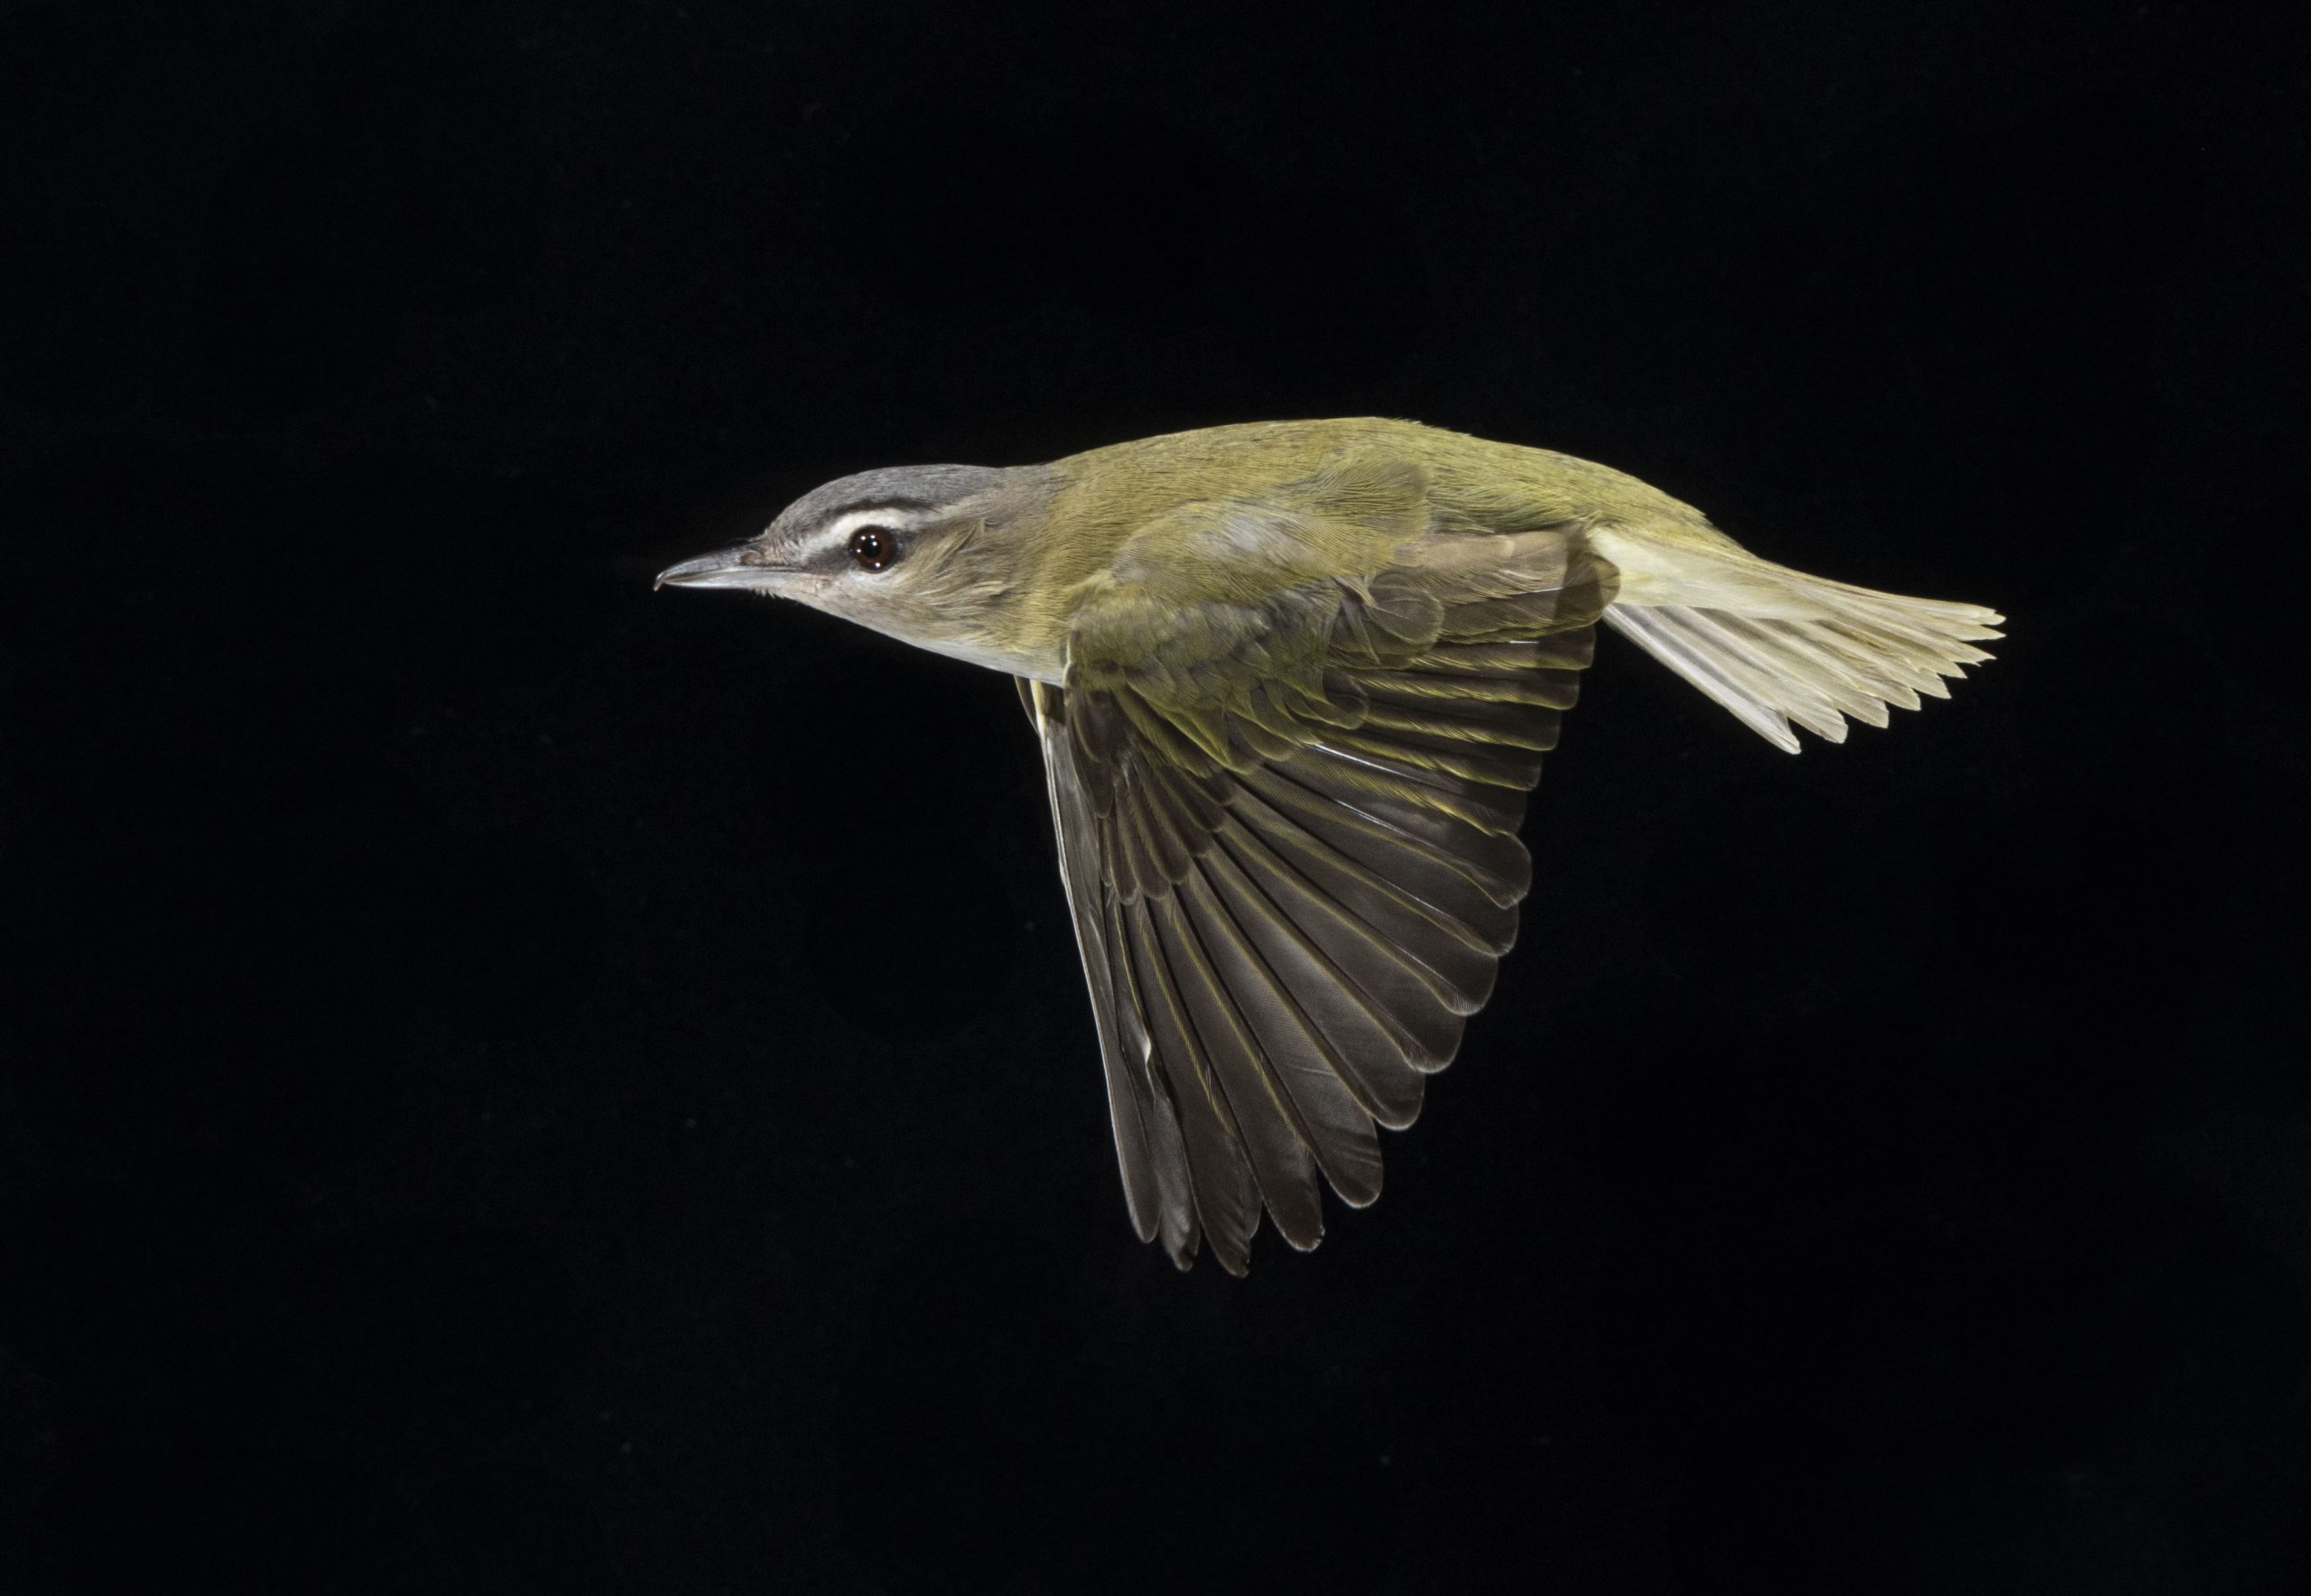 Red-eyed Vireo in flight in front of black background